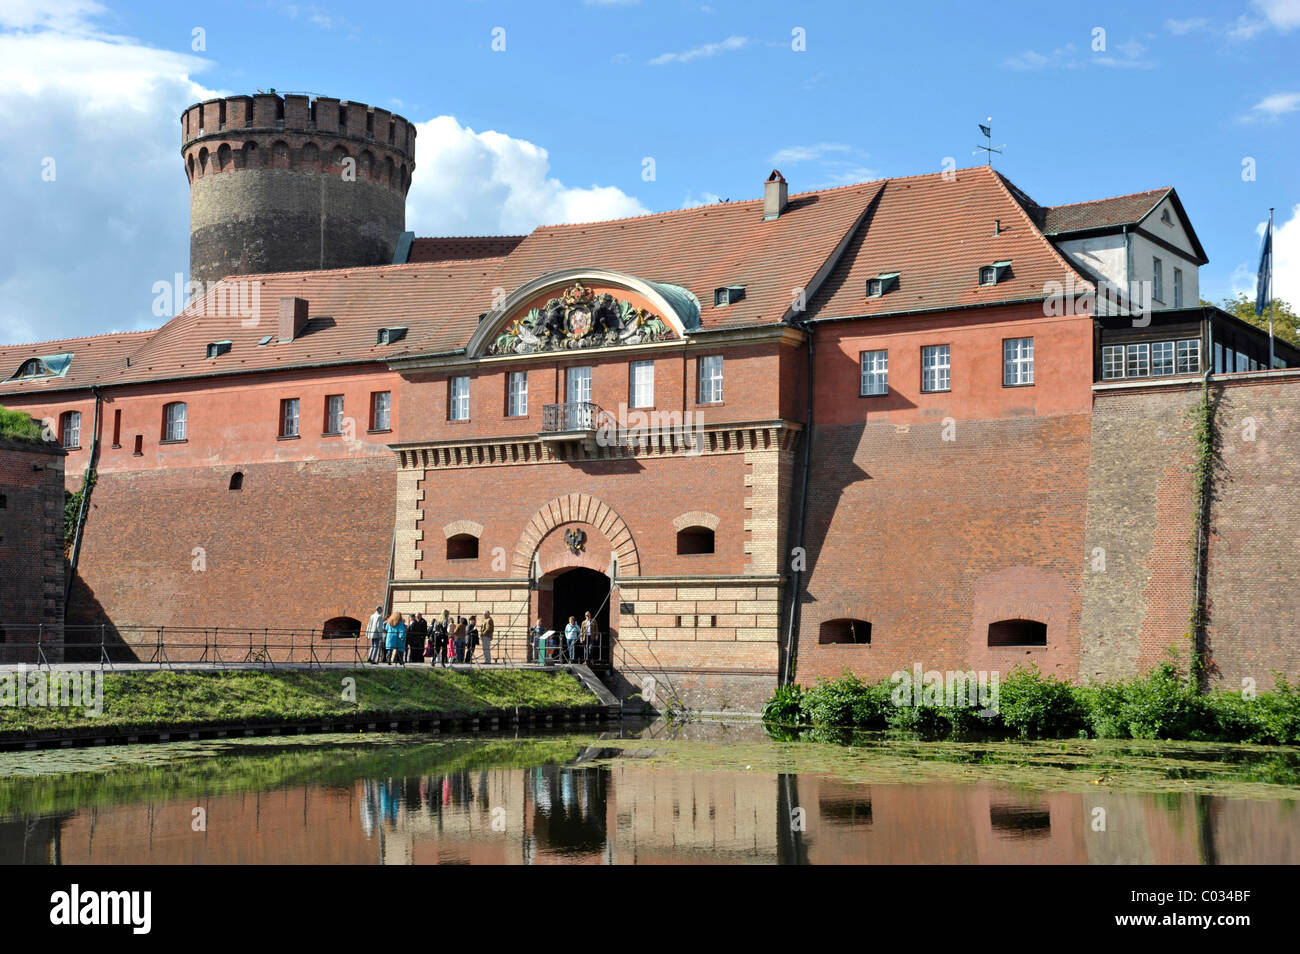 Commandant's House, with moats, Spandau Citadel fortress, Berlin, Germany, Europe - Stock Image